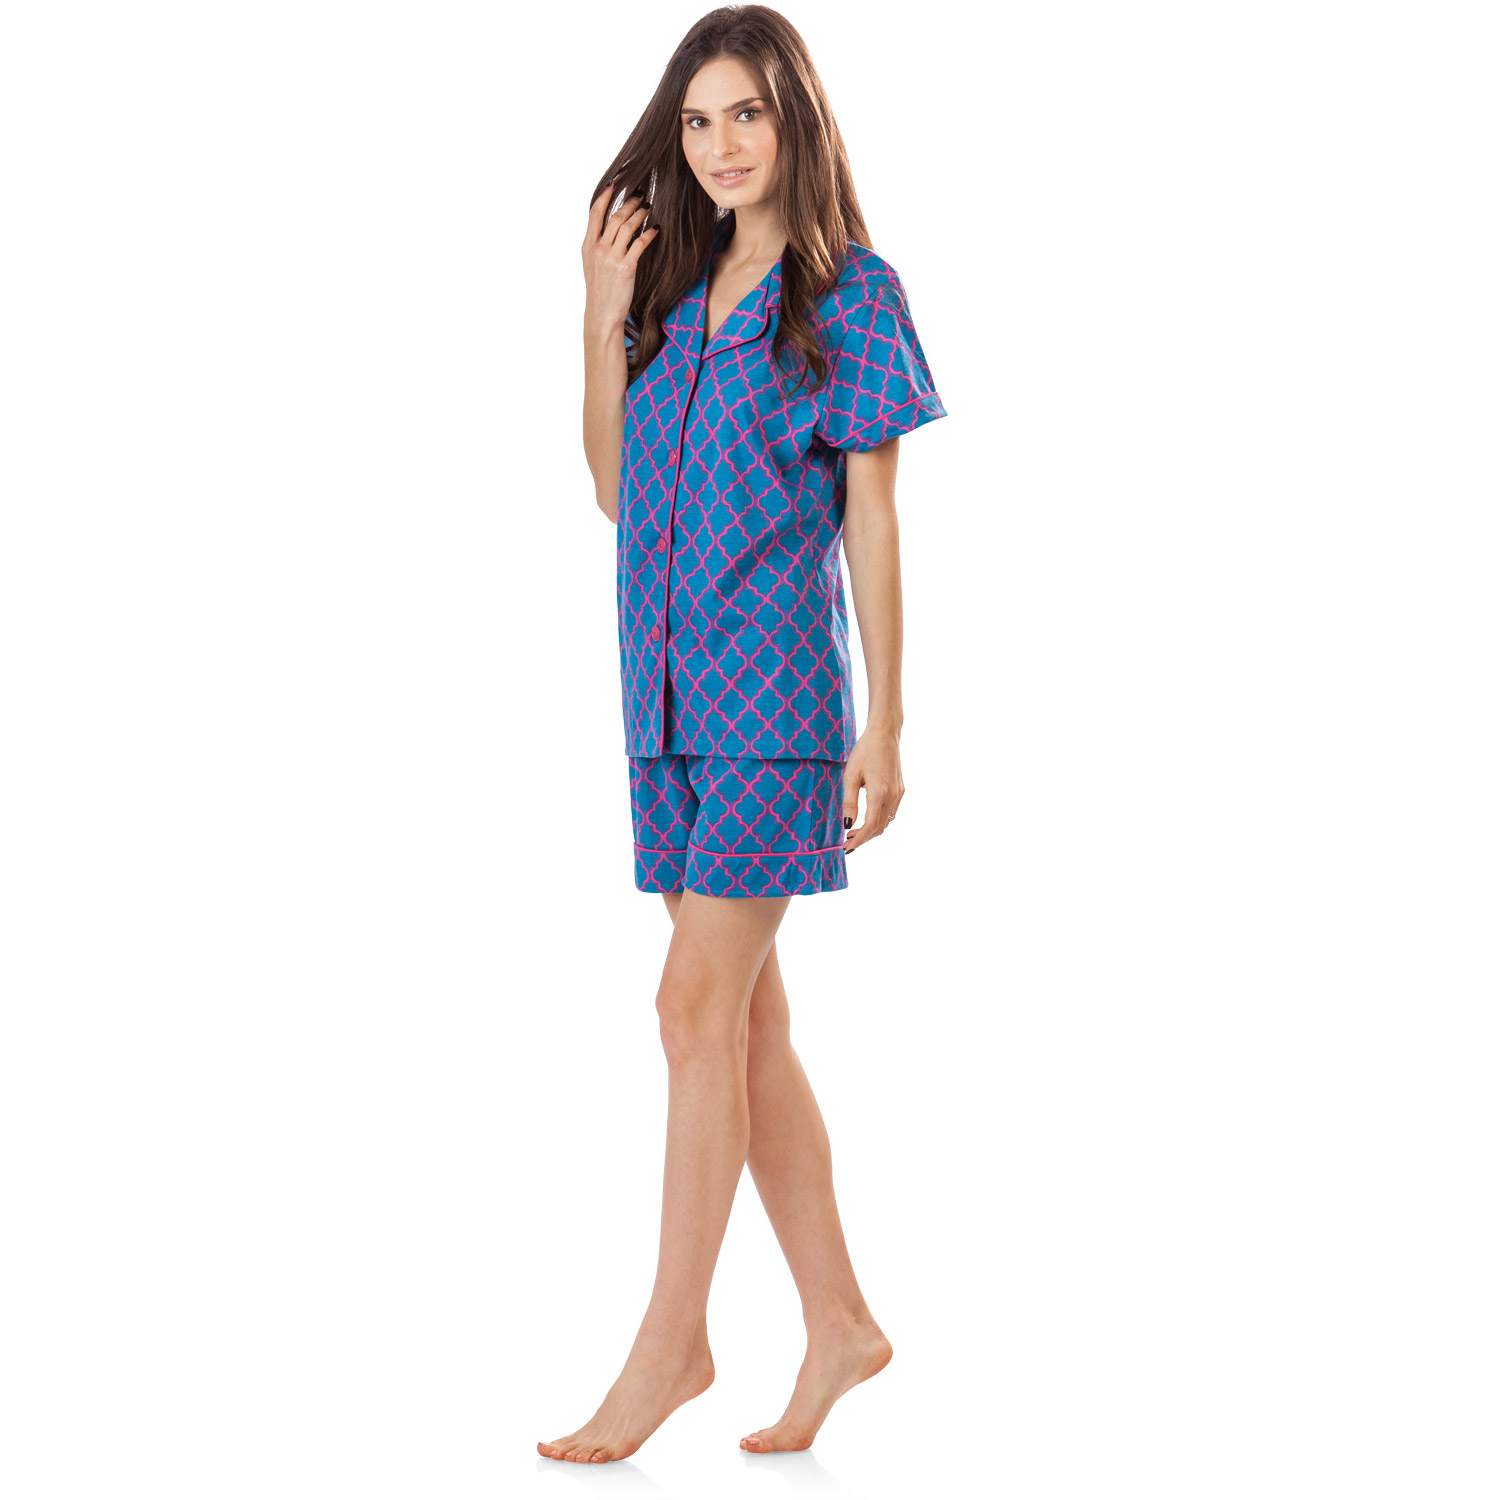 c824f53c266 BedHead Pajamas - BHPJ By Bedhead Pajamas Women's Short Sleeve Pajama  Shorts Set - Jewel Teal Geo Prism - Walmart.com